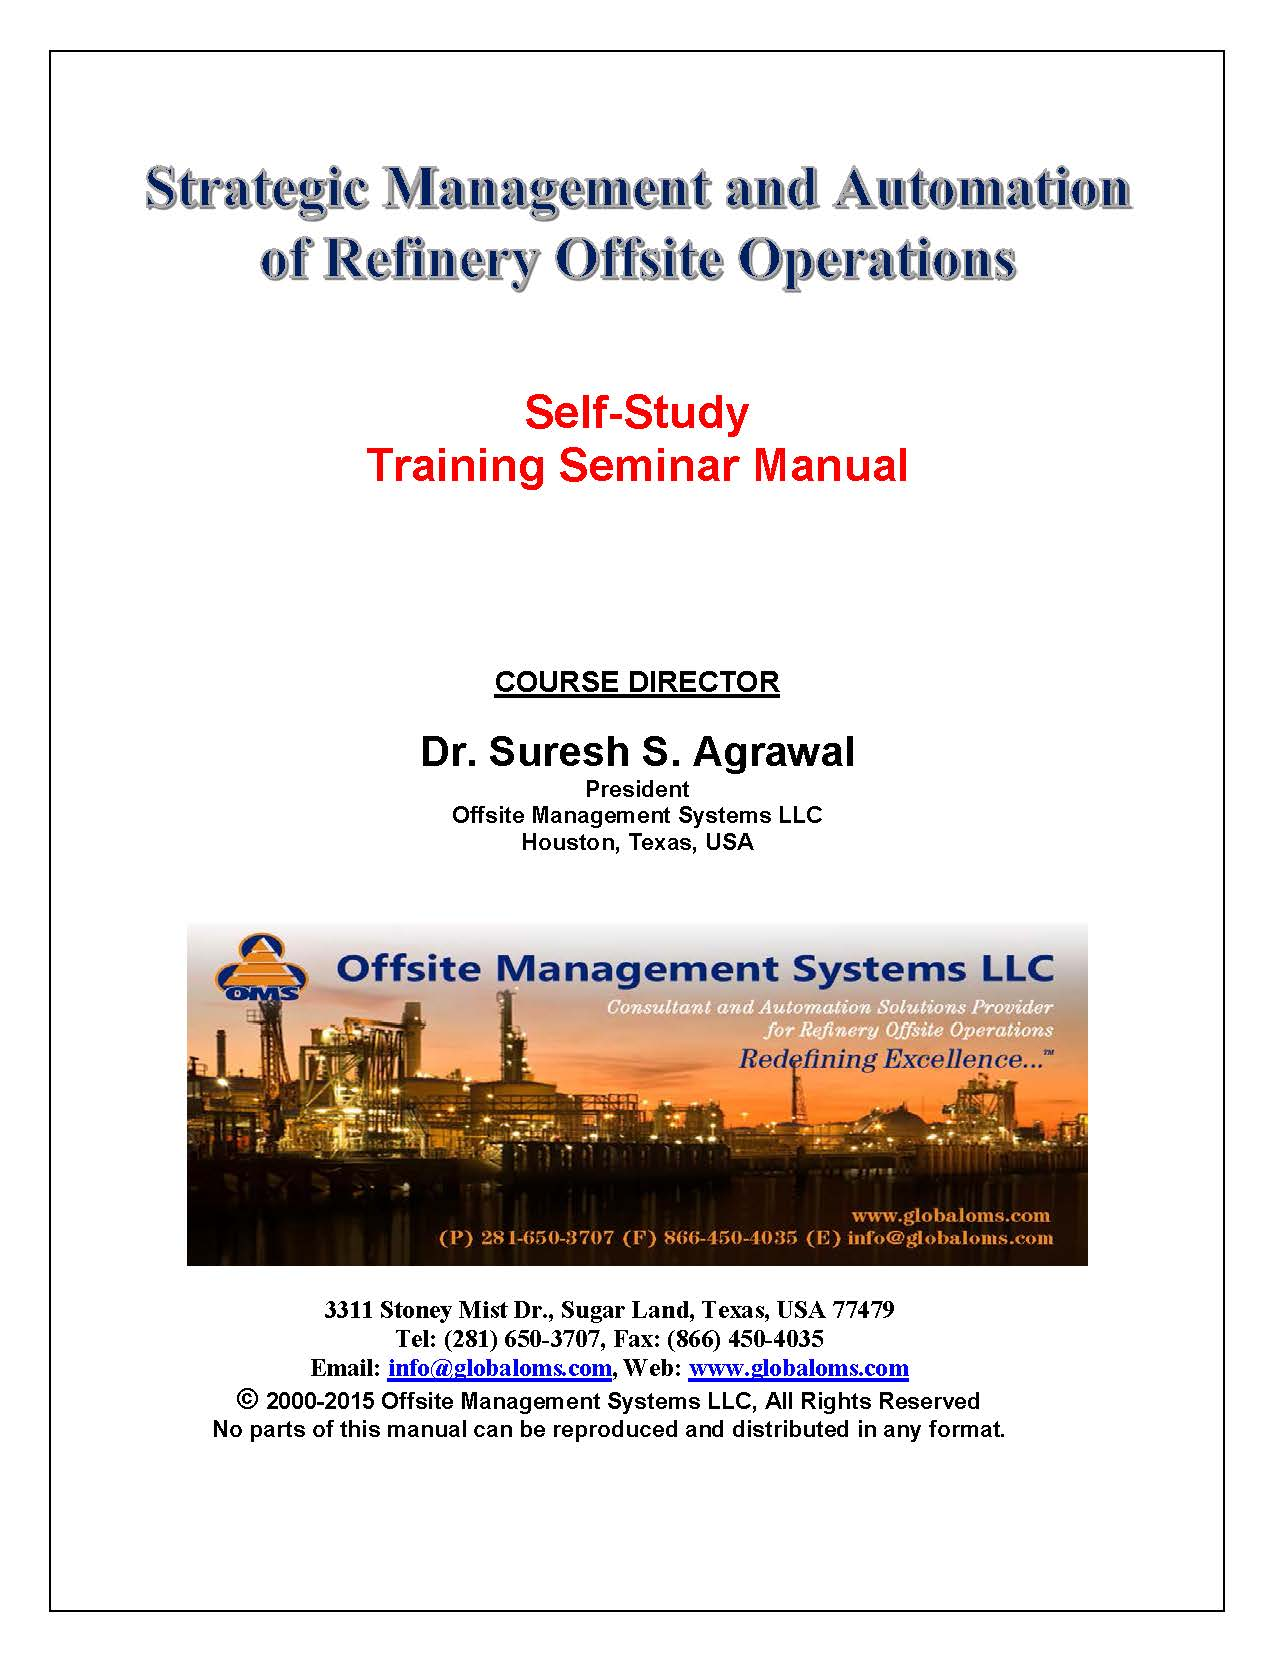 OMS-M01 Training Seminar Manual for Strategic Management and Automation of  Refinery Offsite Operations